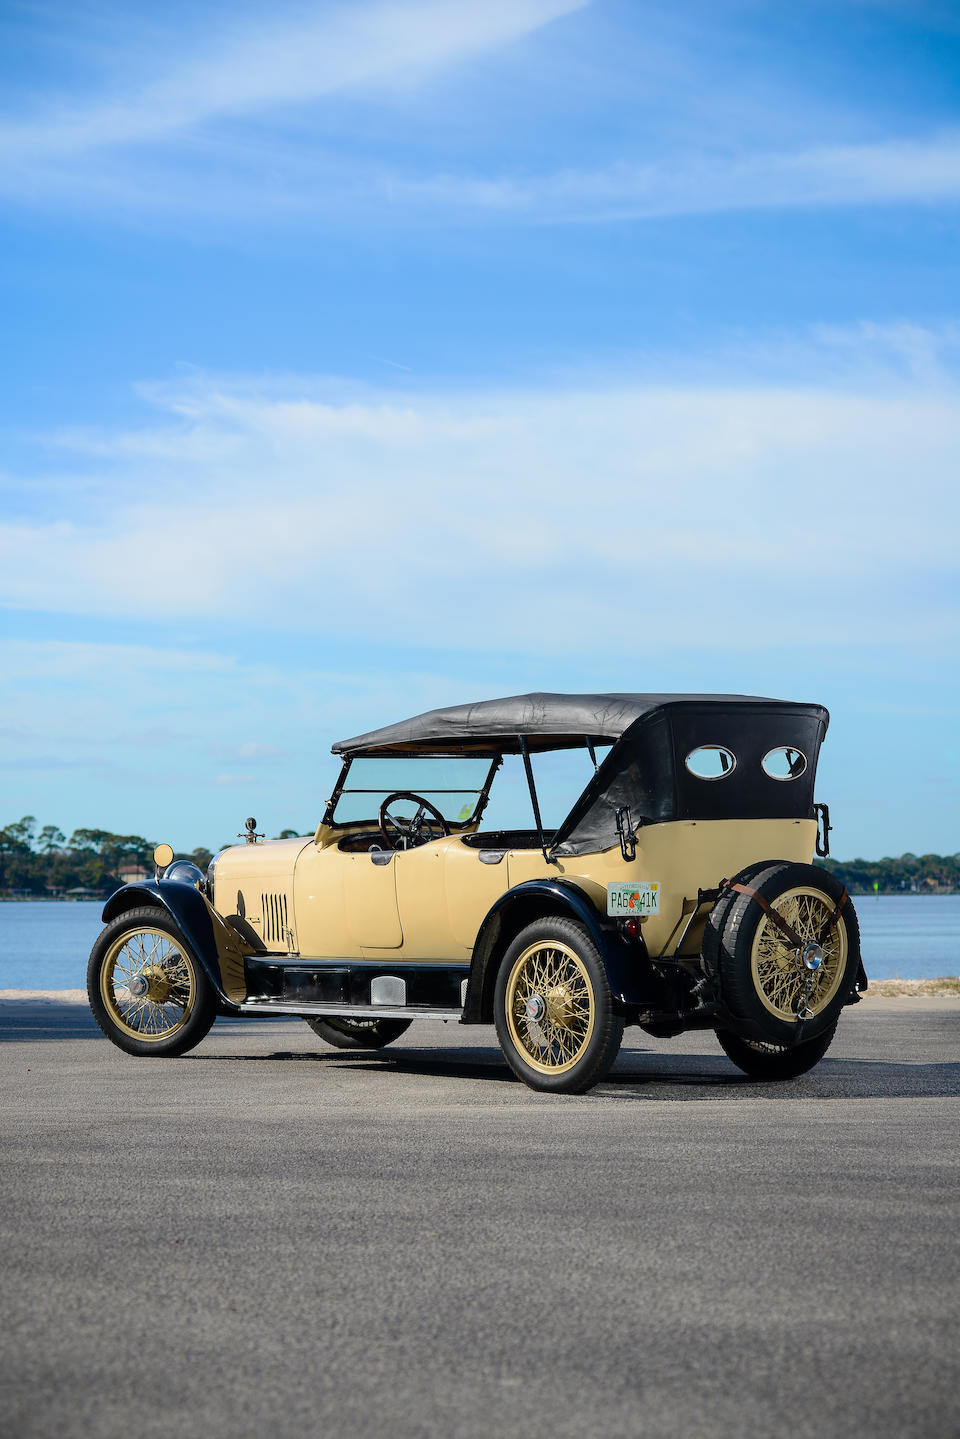 <i>Ex-Edwin L. Griffin of the Pacific Northwest based Griffin Fuel Company</i><br /><b>1922 MERCER SERIES 5 SPORTING  </b><br />Chassis no. 16210 <br />Engine no. 6815